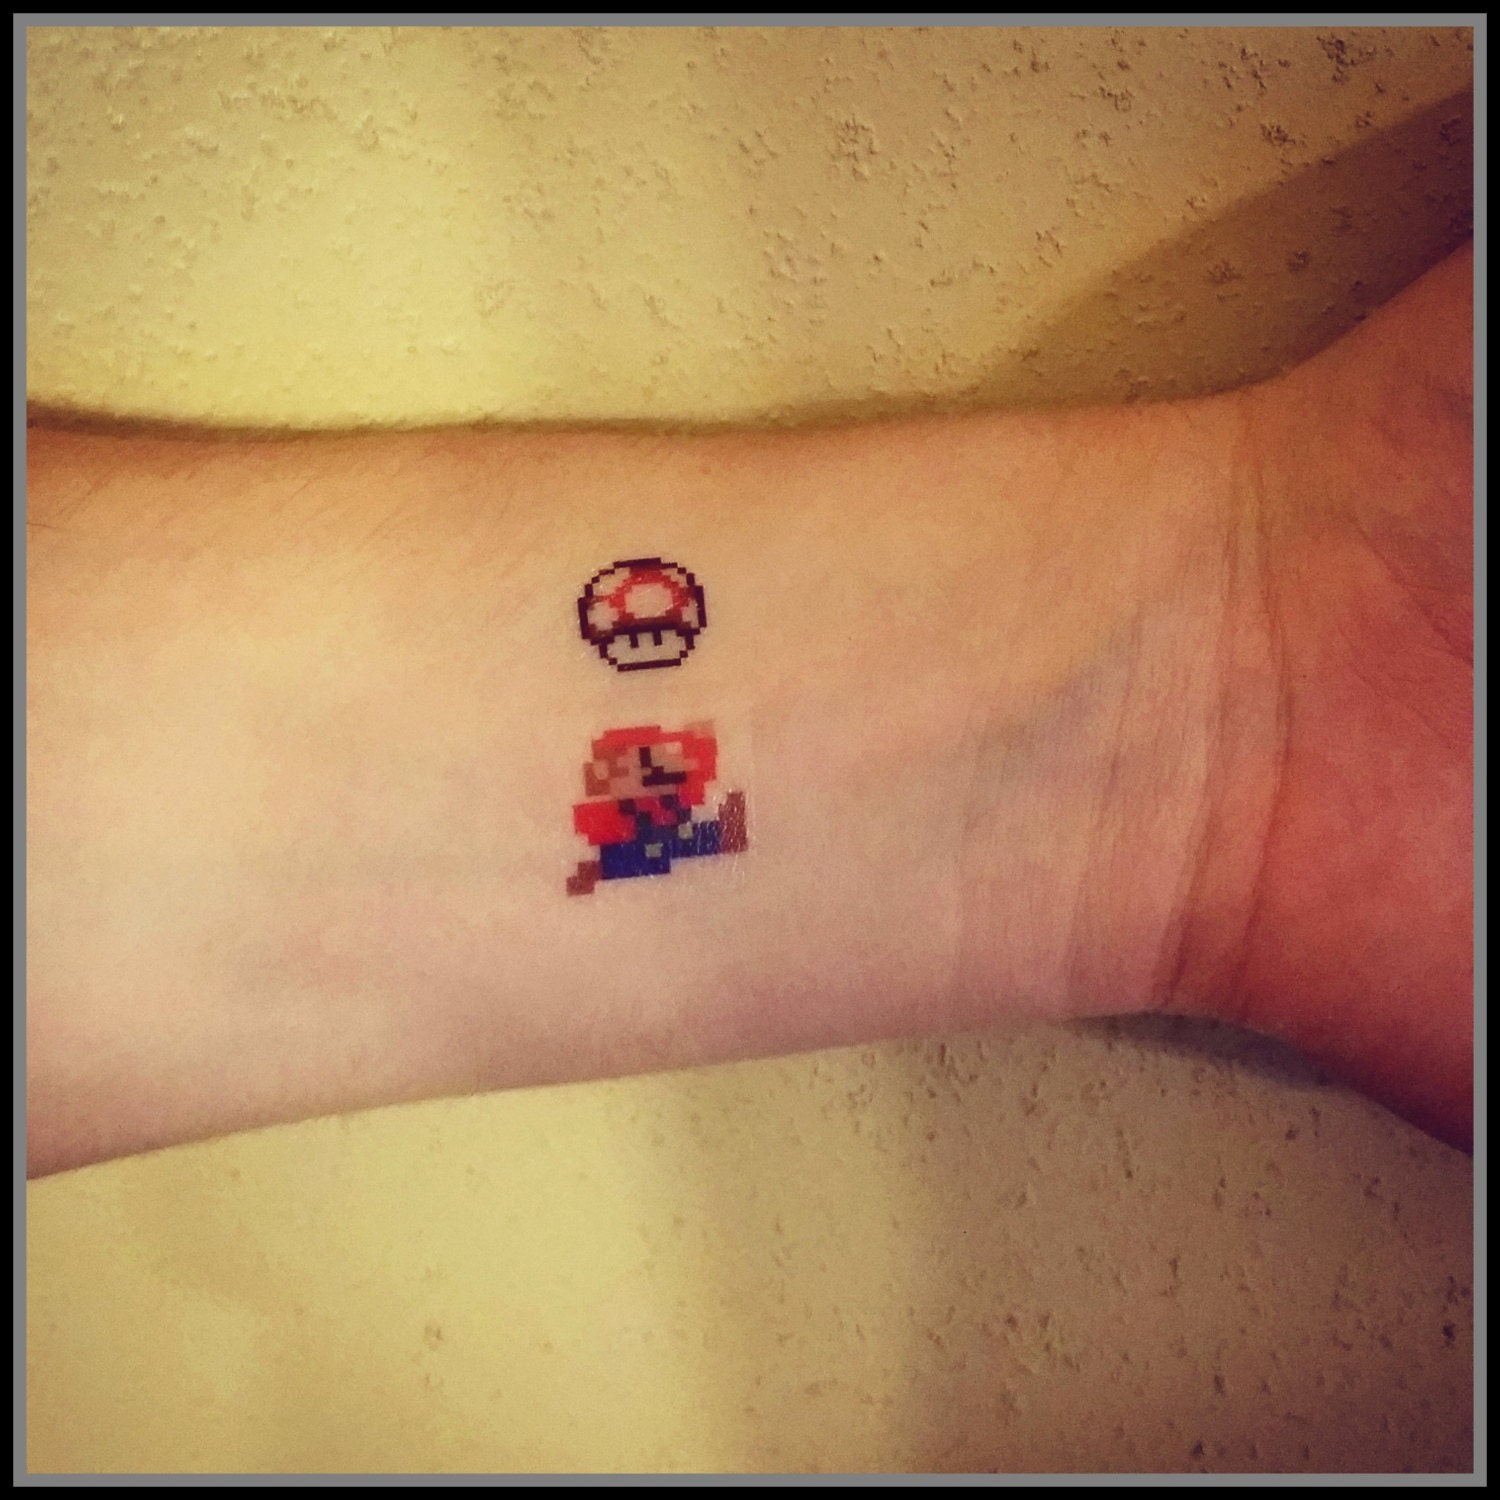 Mario temporary tattoo 8 bit mario and mushroom fake tattoos for Mario mushroom tattoo